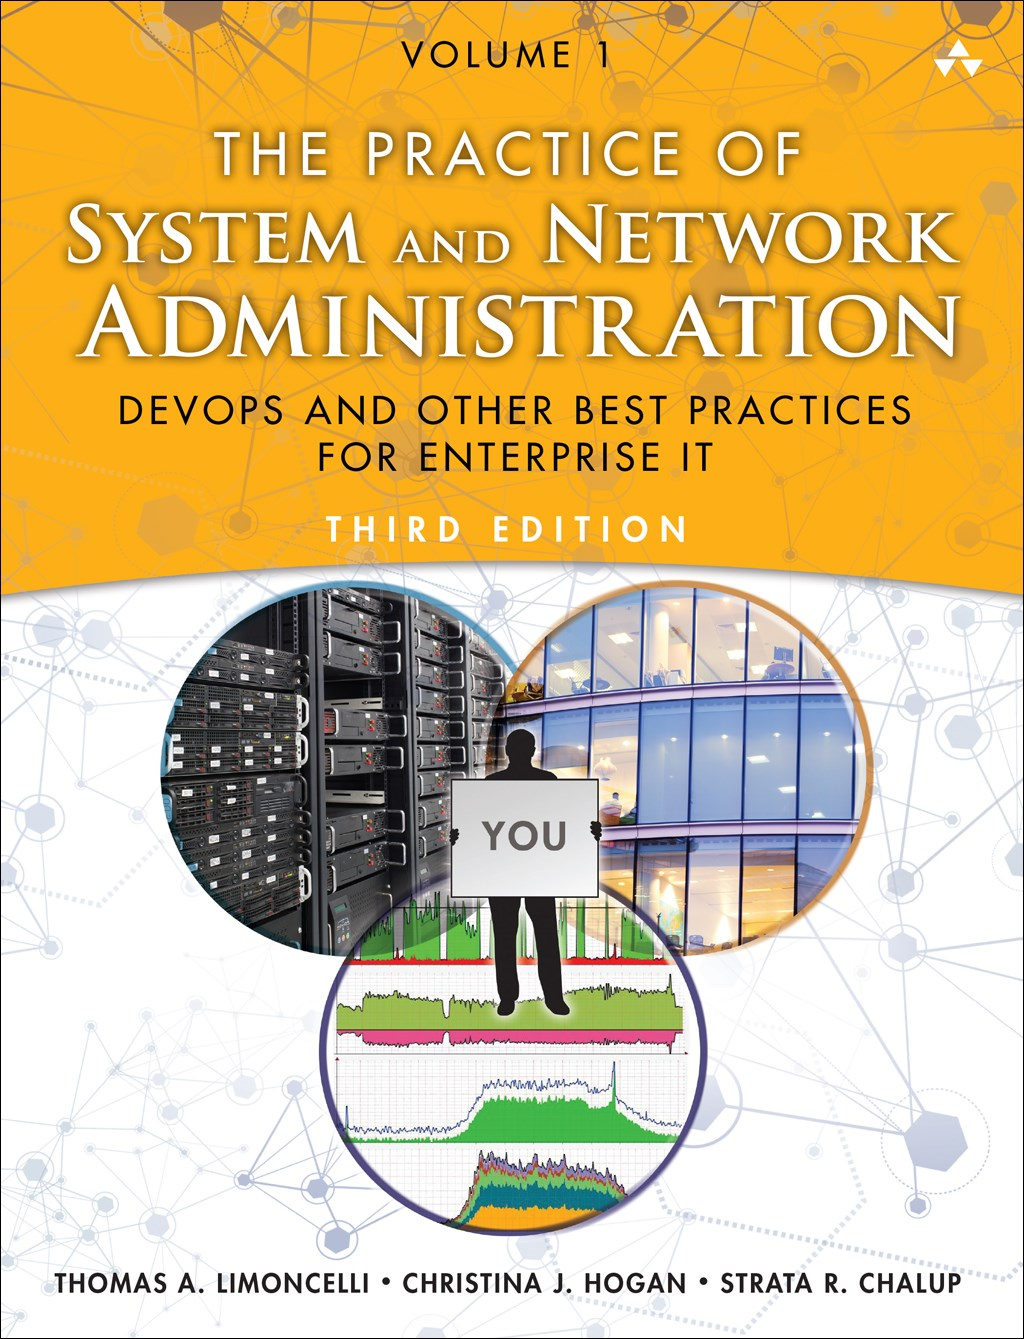 Practice of System and Network Administration, The: Volume 1: DevOps and other Best Practices for Enterprise IT, 3rd Edition